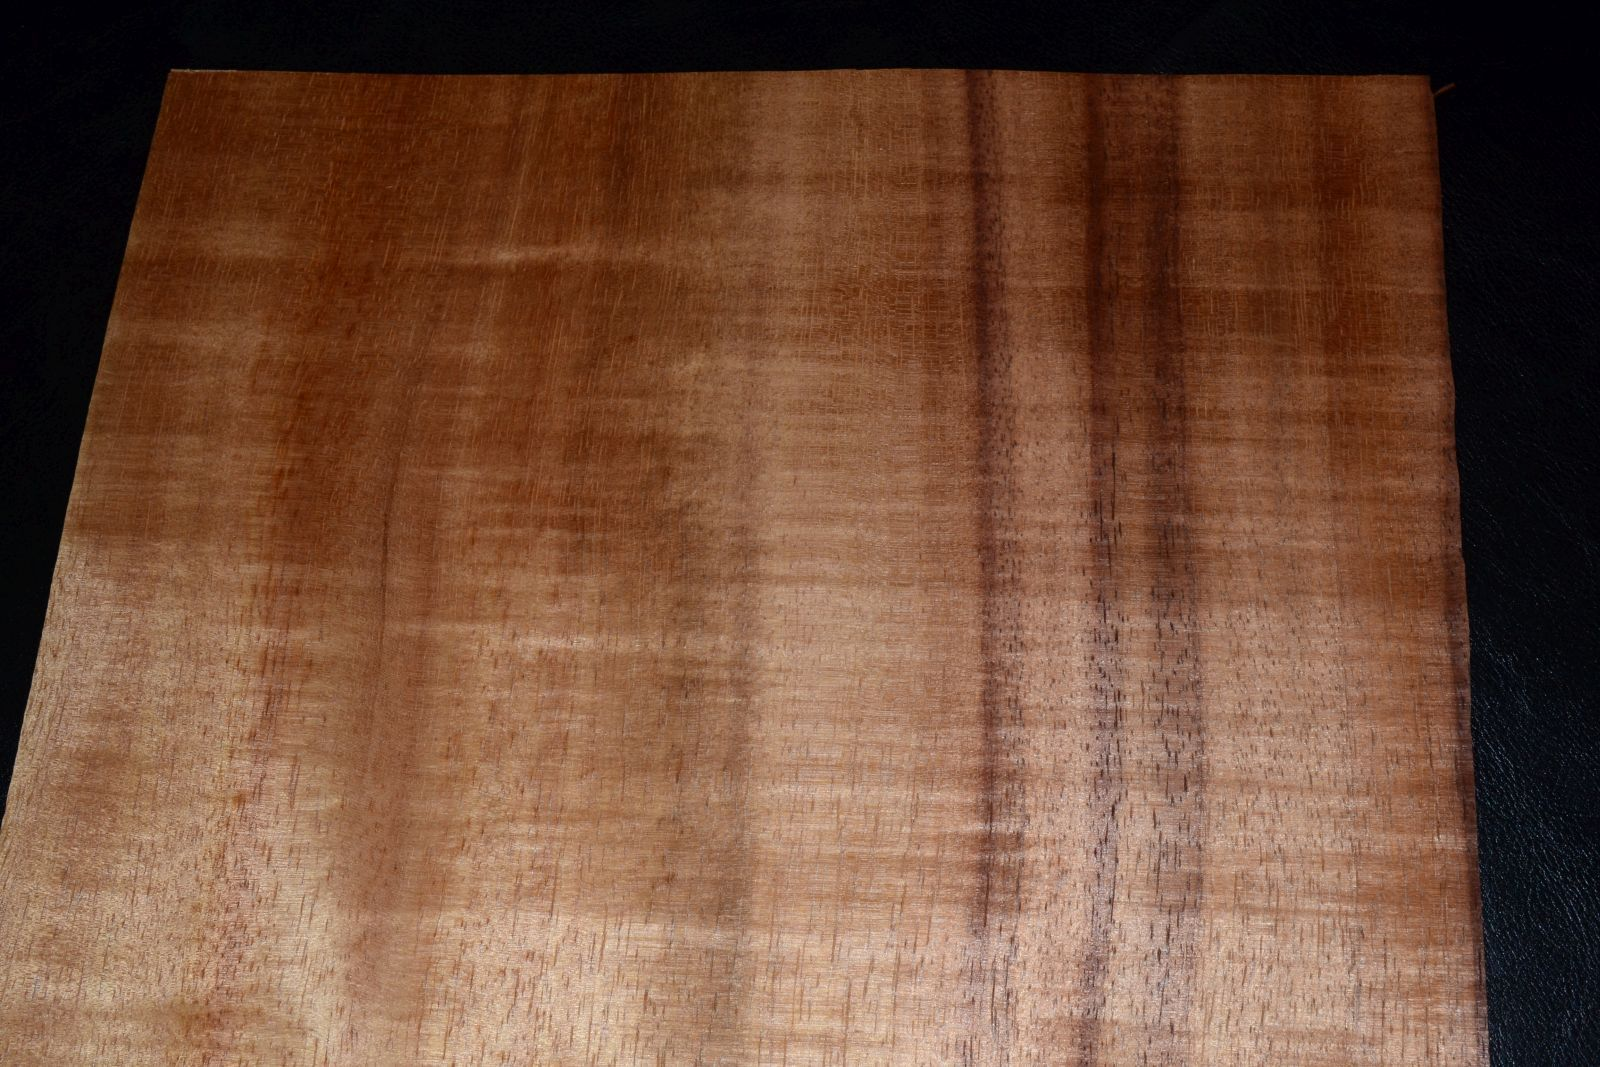 Koa Raw Wood Veneer Sheets 11 X 28 Inches 1 32nd Thick Wood Veneer Sheets Raw Wood Wood Veneer